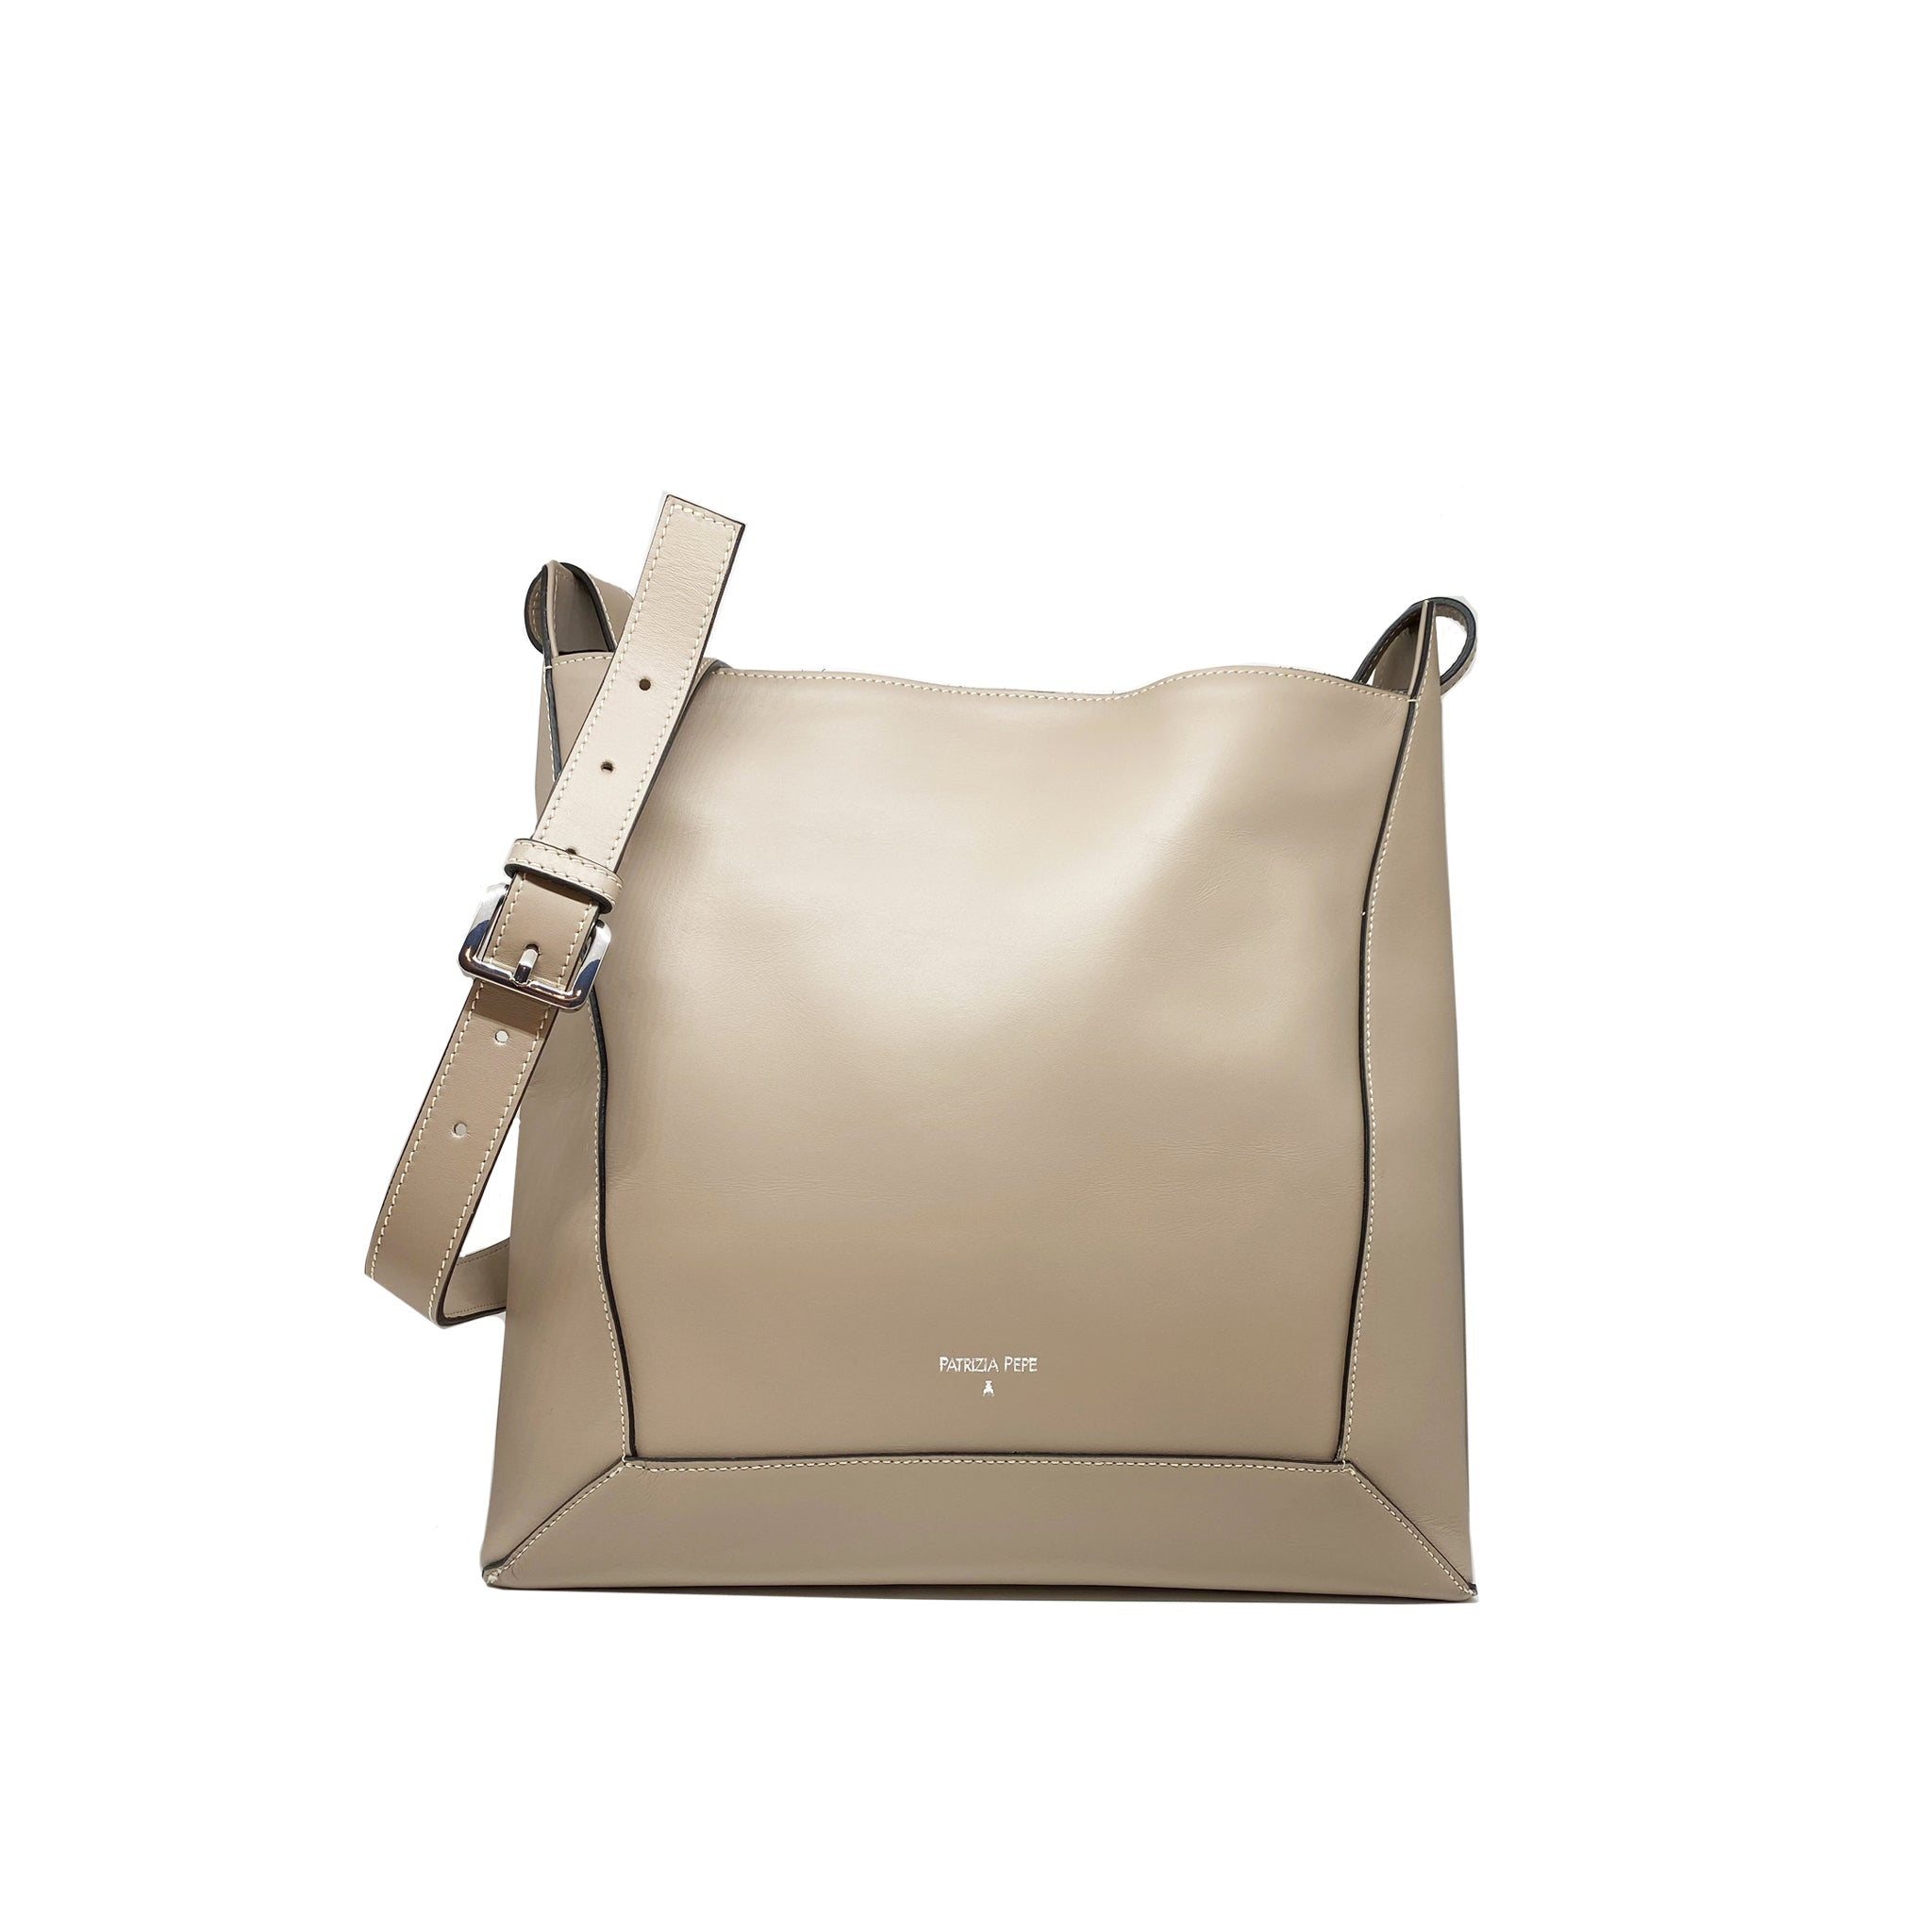 Patrizia Pepe Logo Leather Shoulder Bag